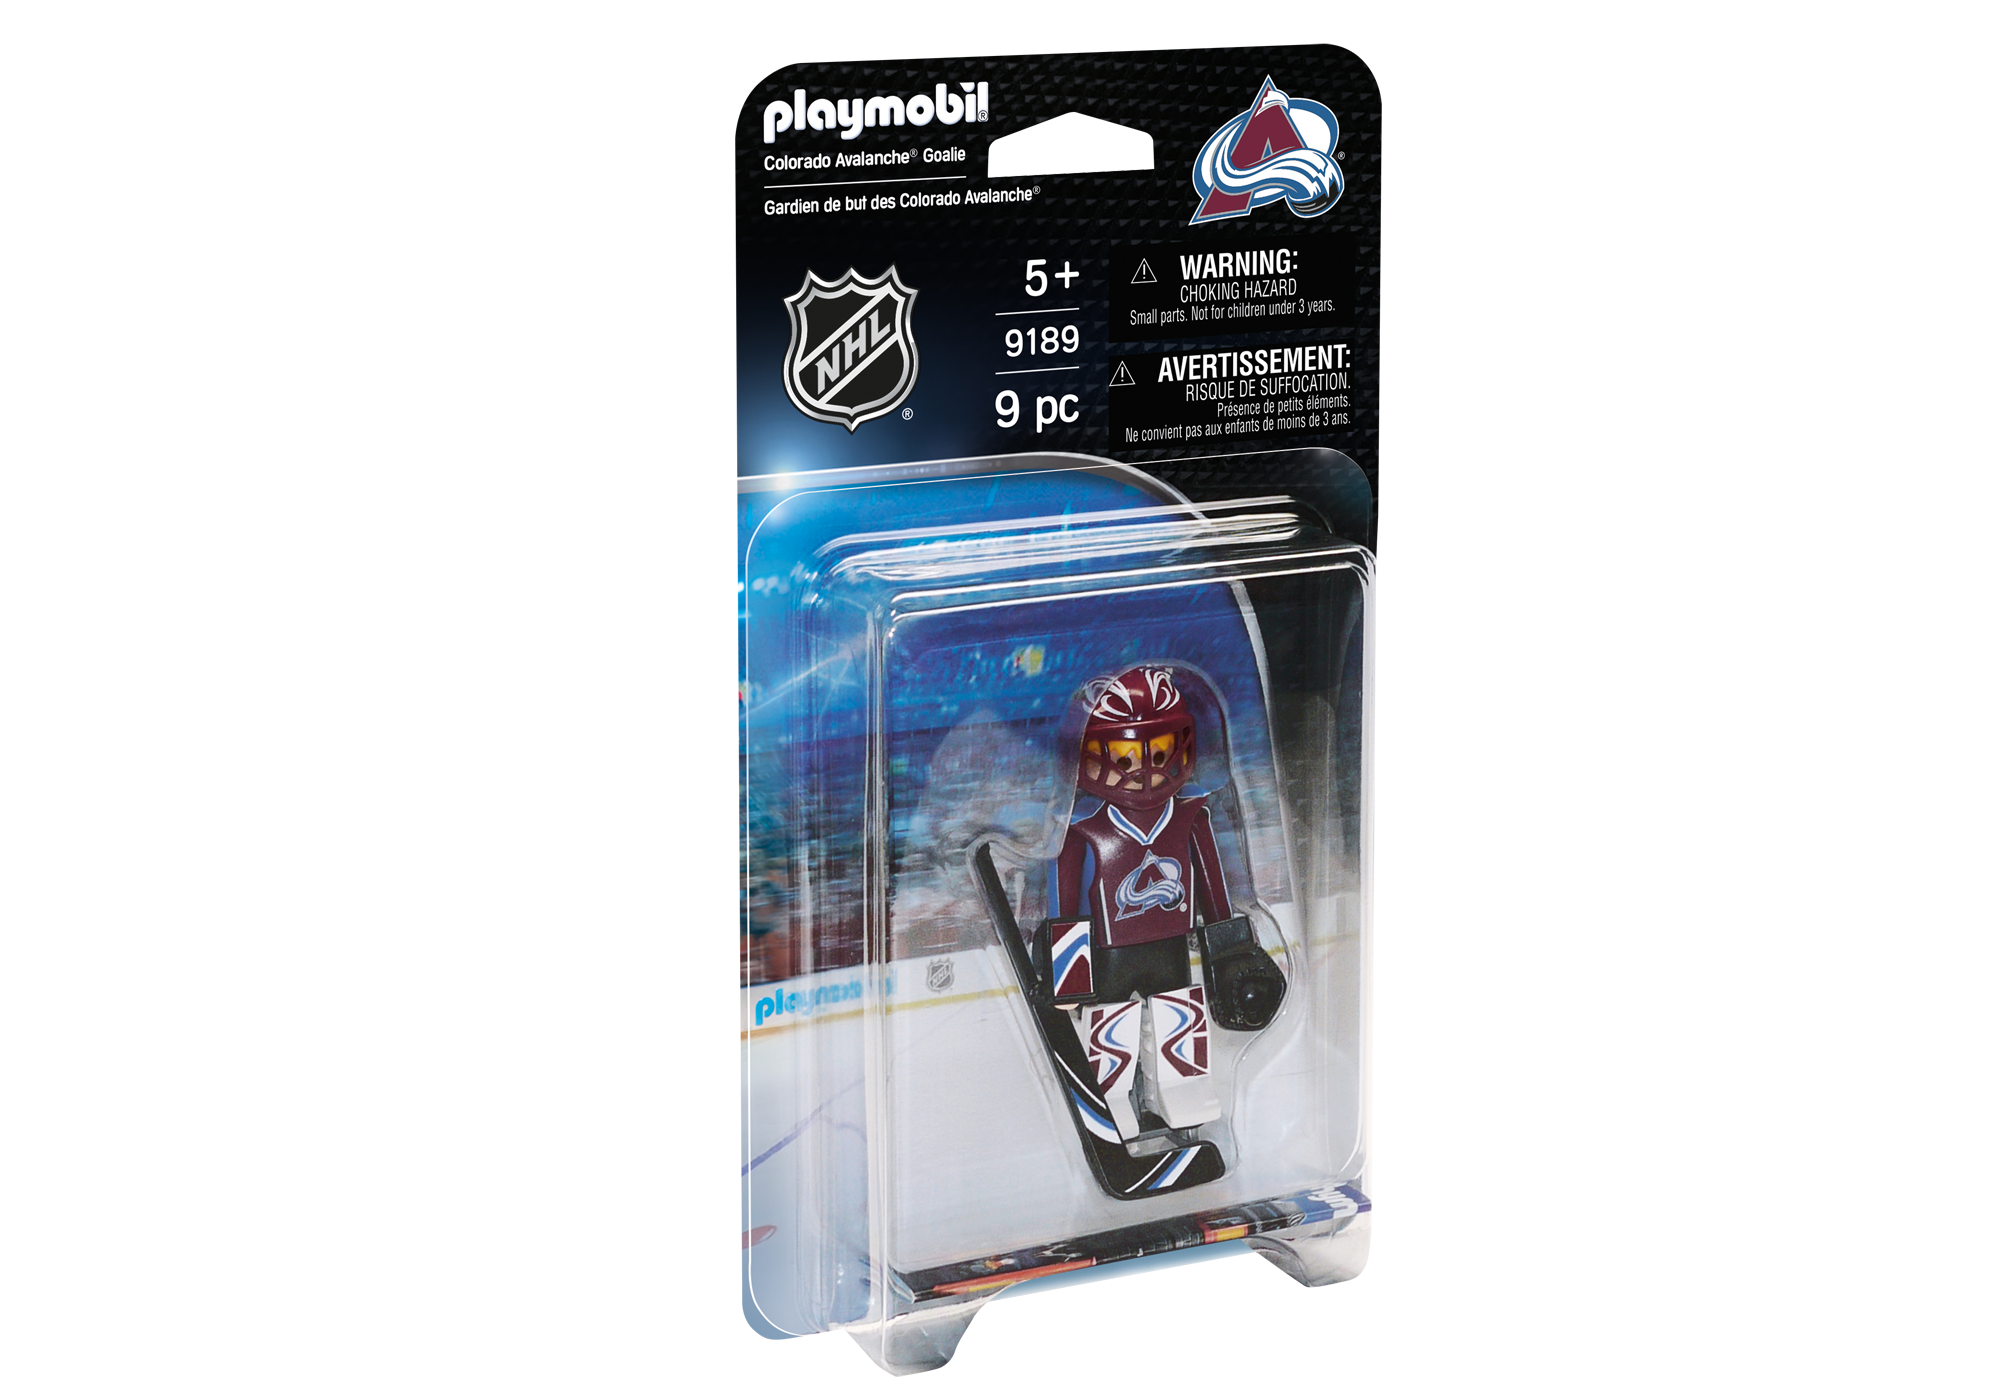 http://media.playmobil.com/i/playmobil/9189_product_box_front/NHL® Colorado Avalanche® Goalie